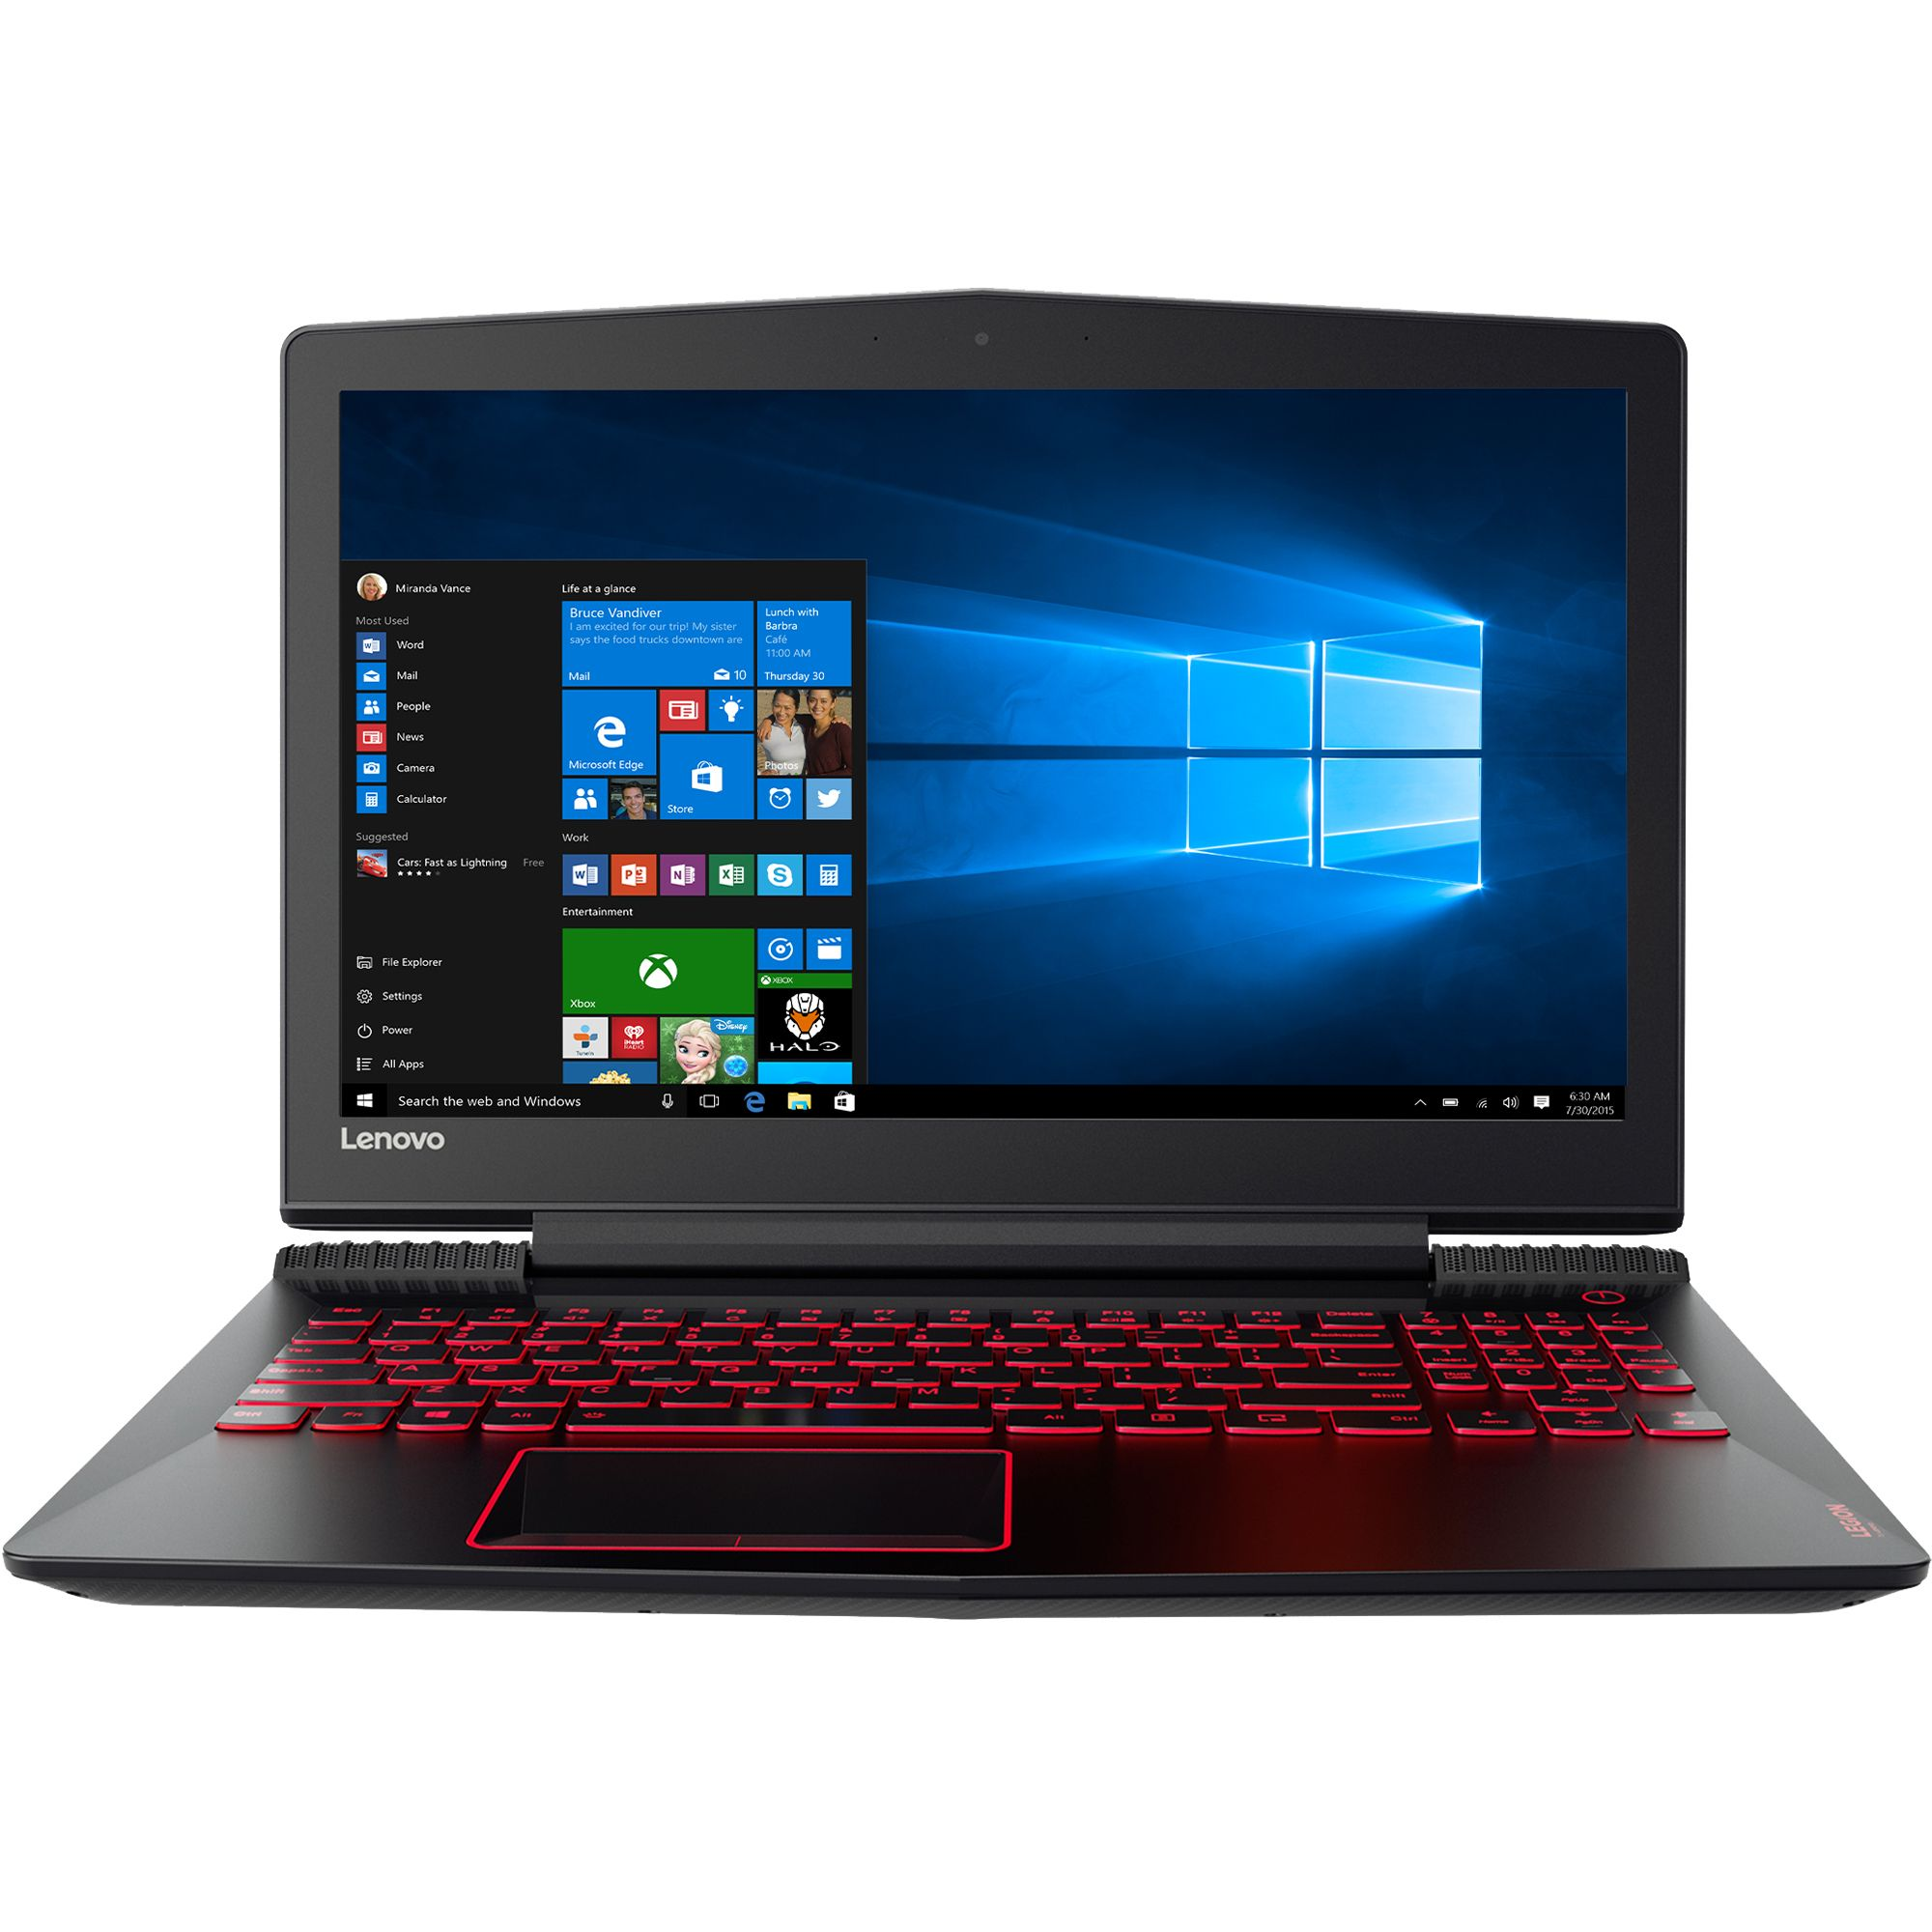 Notebook Lenovo Legion Y520 15.6 Full HD Intel Core i7-7700HQ GTX 1050 Ti-4GB RAM 8GB HDD 1TB FreeDOS